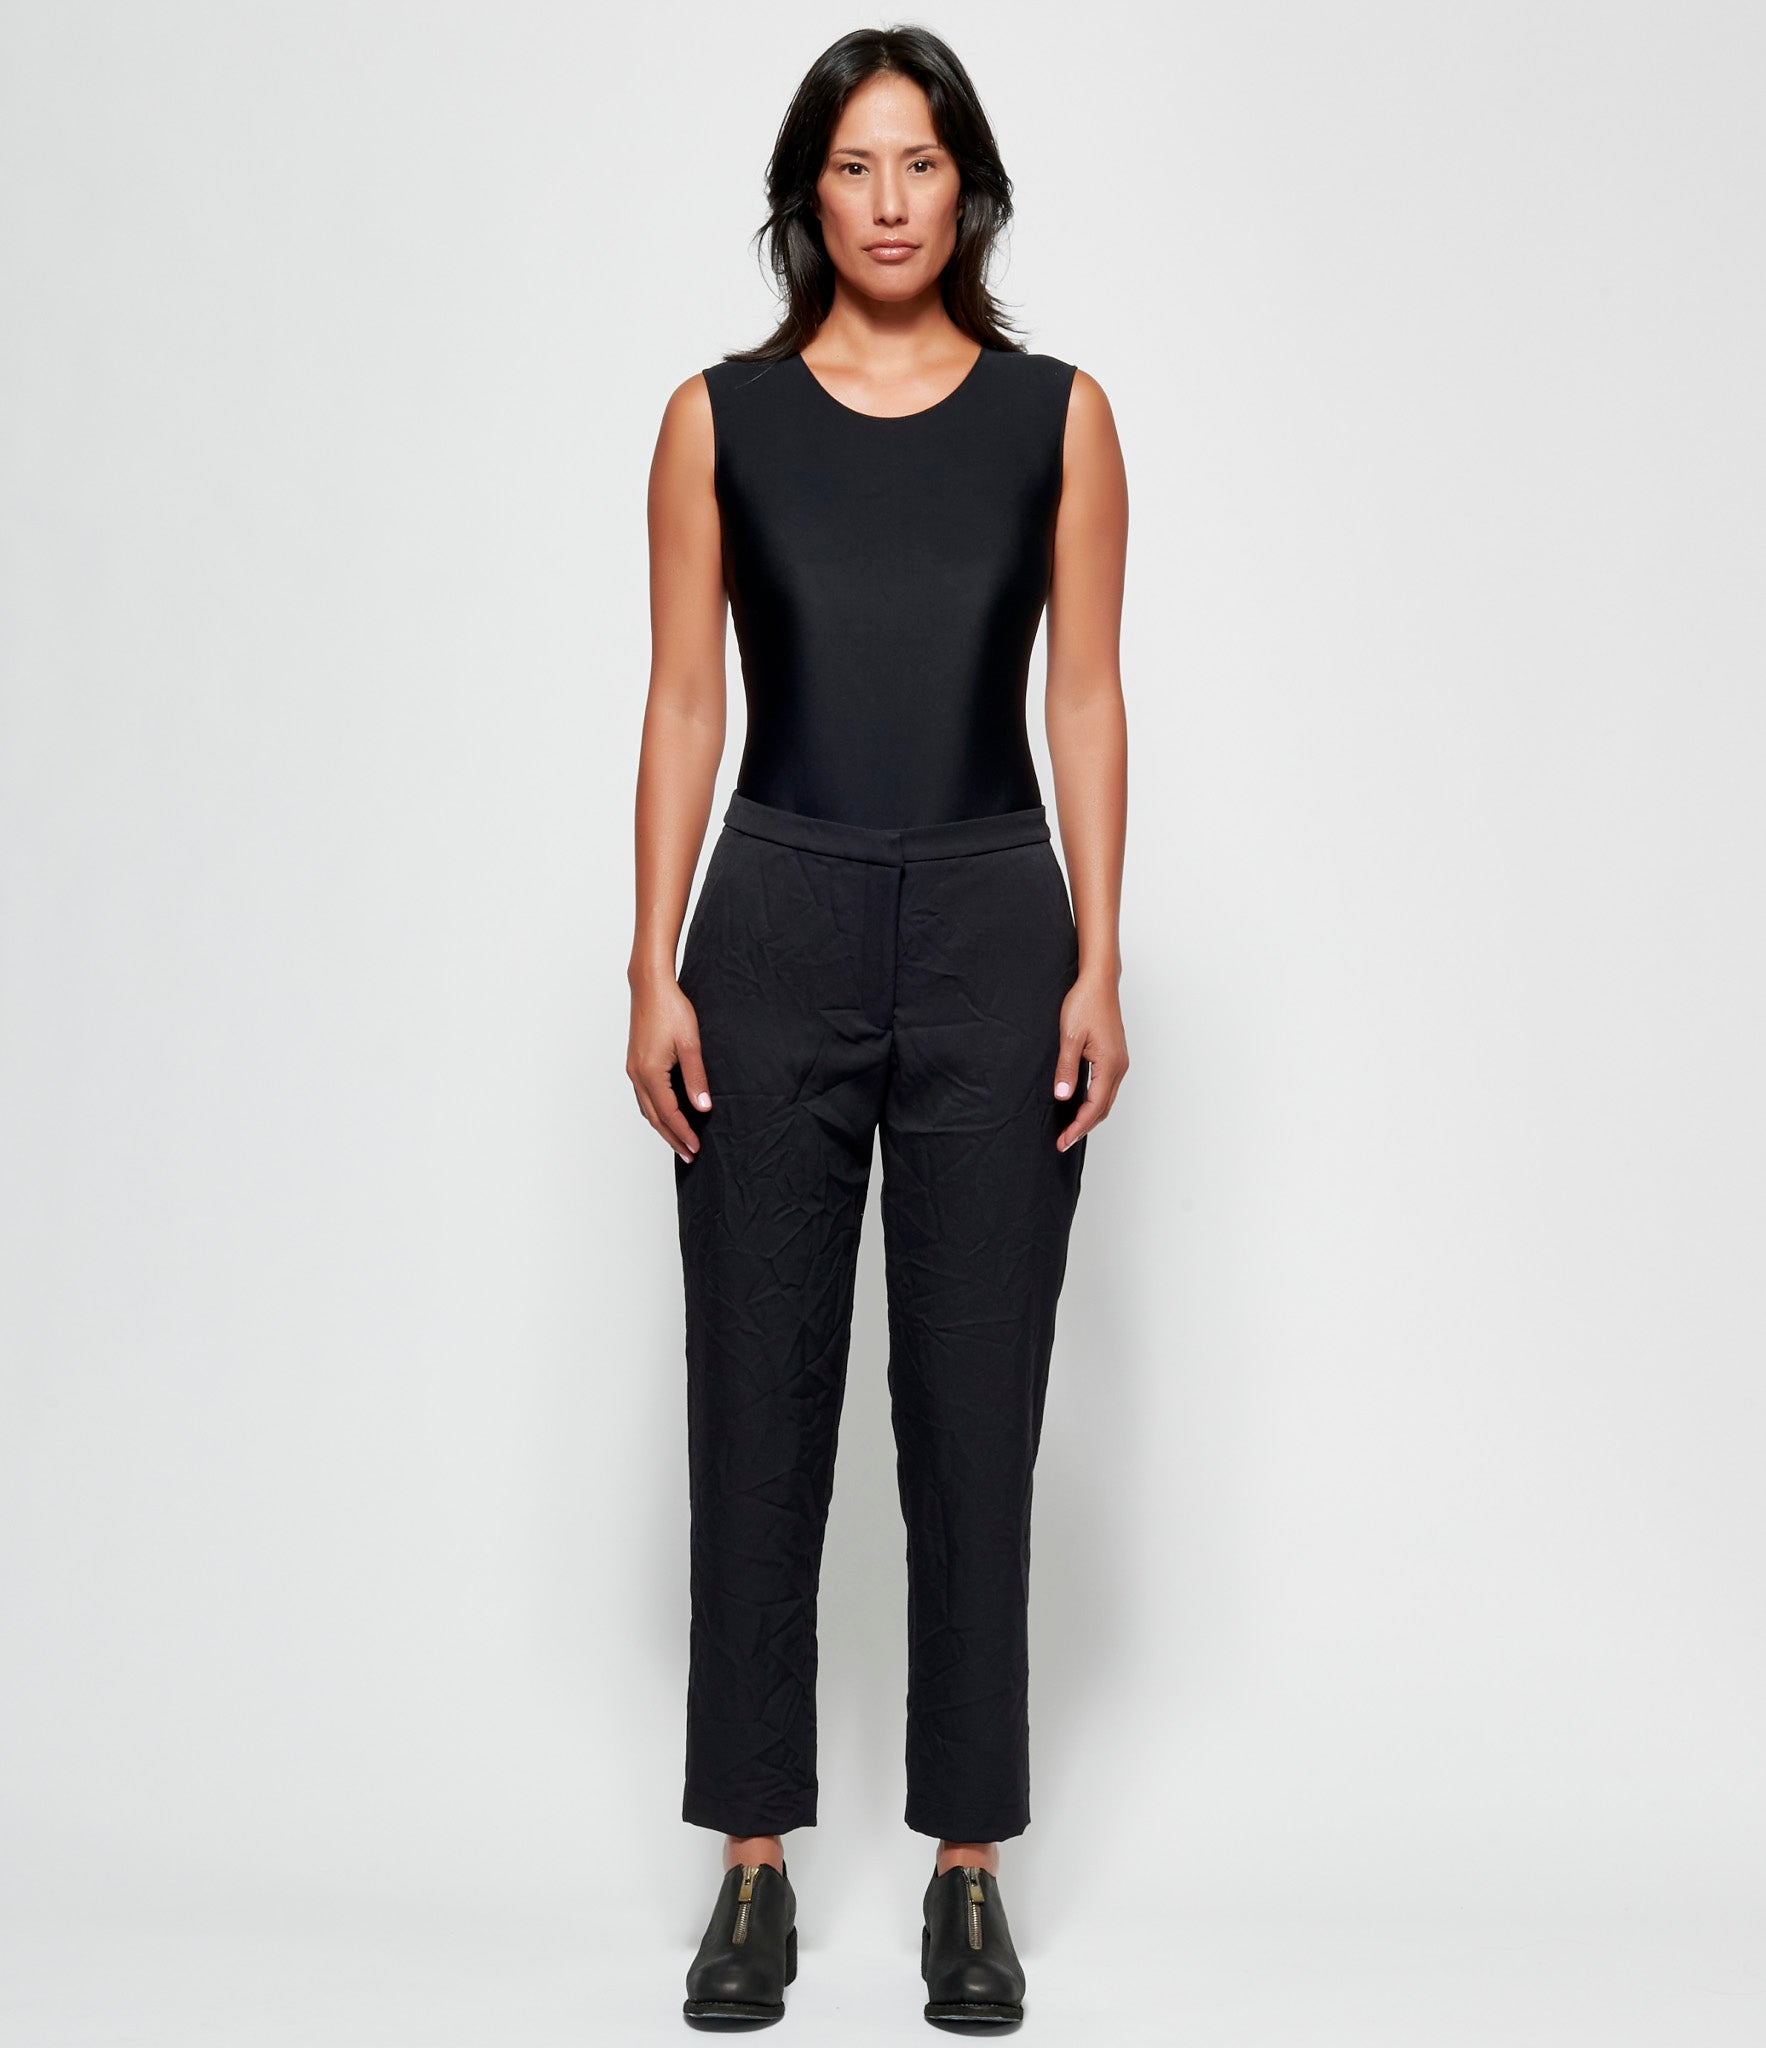 Replika Black Crinkled Pants